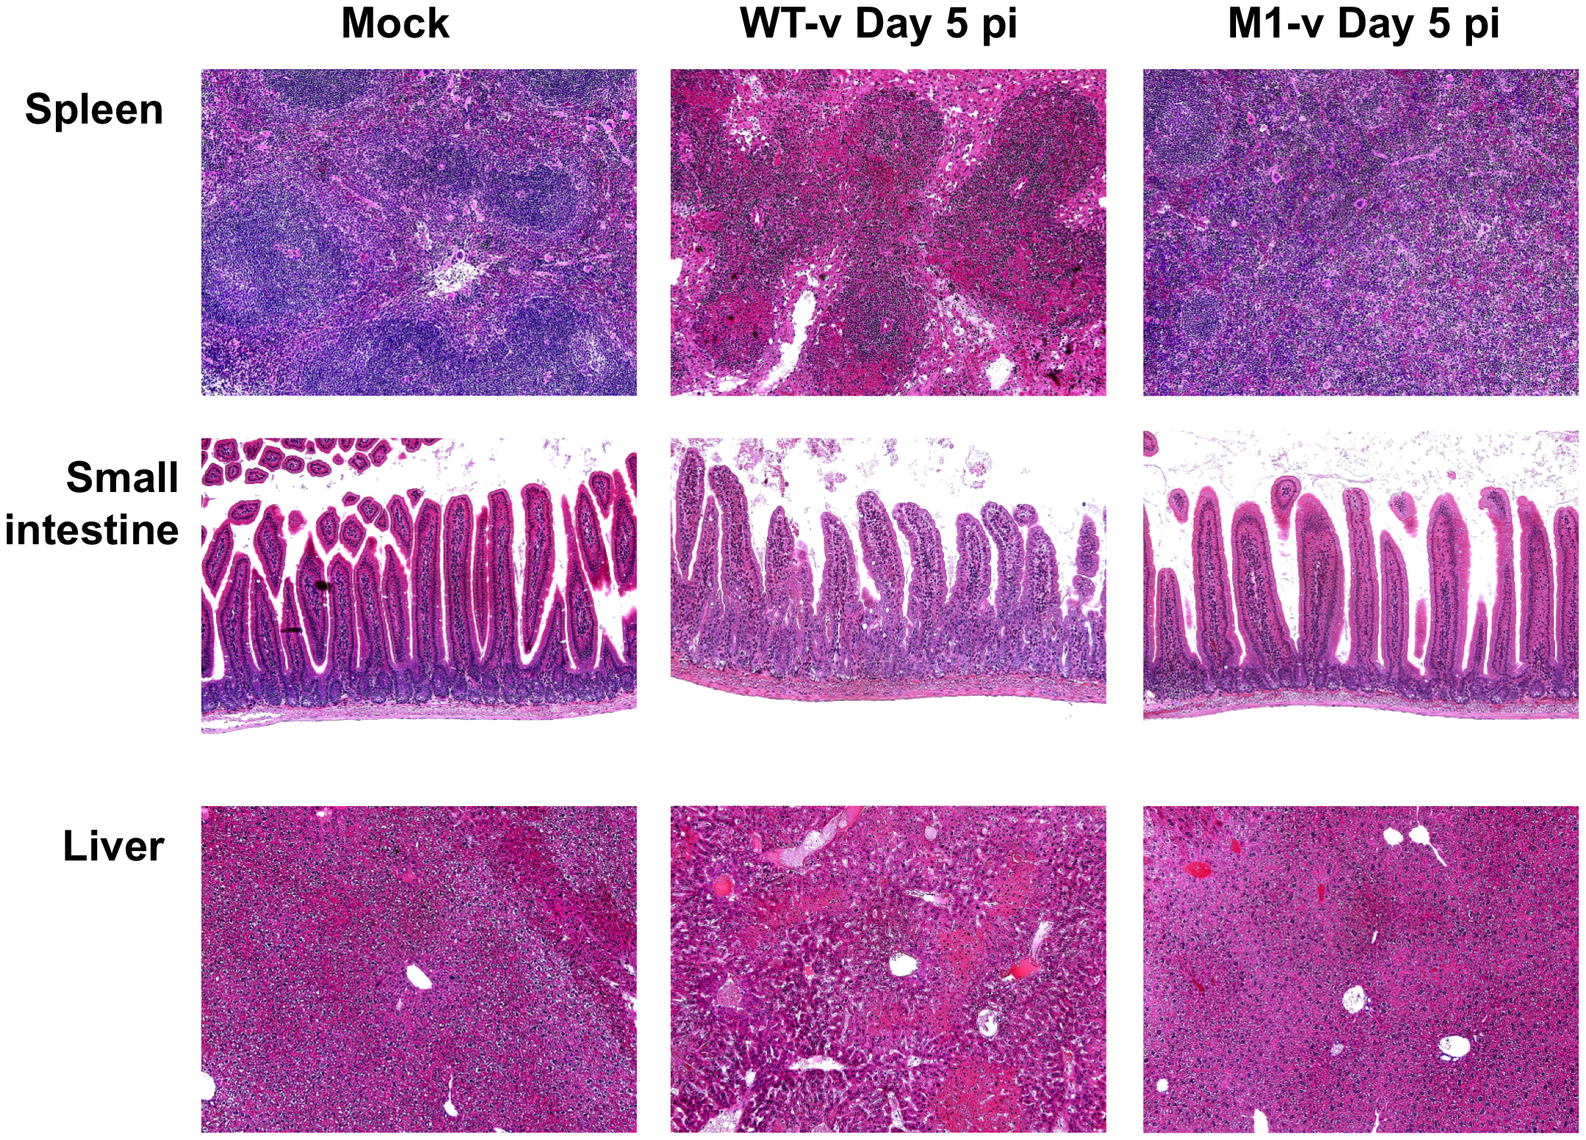 Pathology is markedly reduced in the absence of VF1 expression.